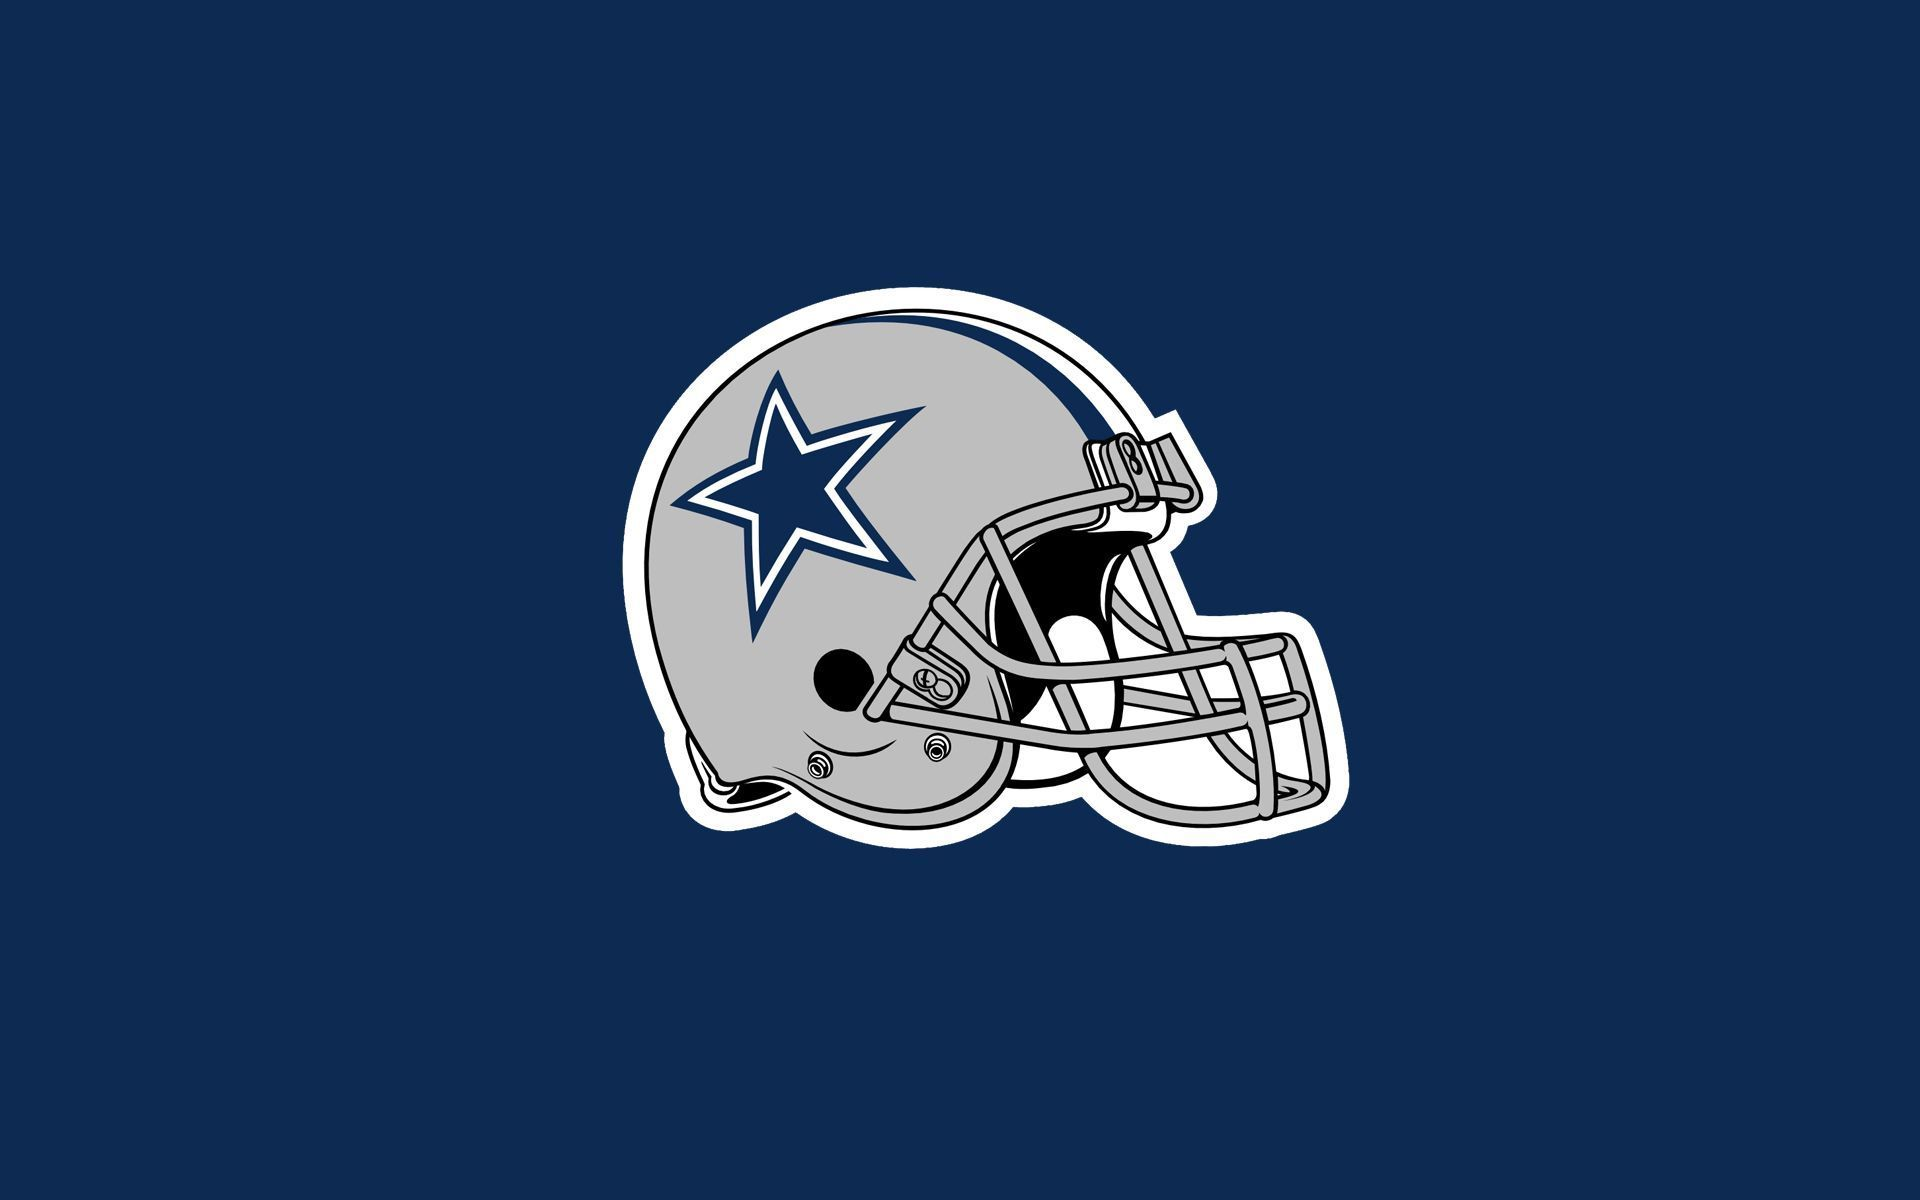 Wallpapers Of Dallas Cowboys Group 1136 640 Free Wallpapers Dallas Cowboys 32 Wallpapers Adorable Wallpape Dallas Cowboys Wallpaper Cowboys Helmet Cowboys